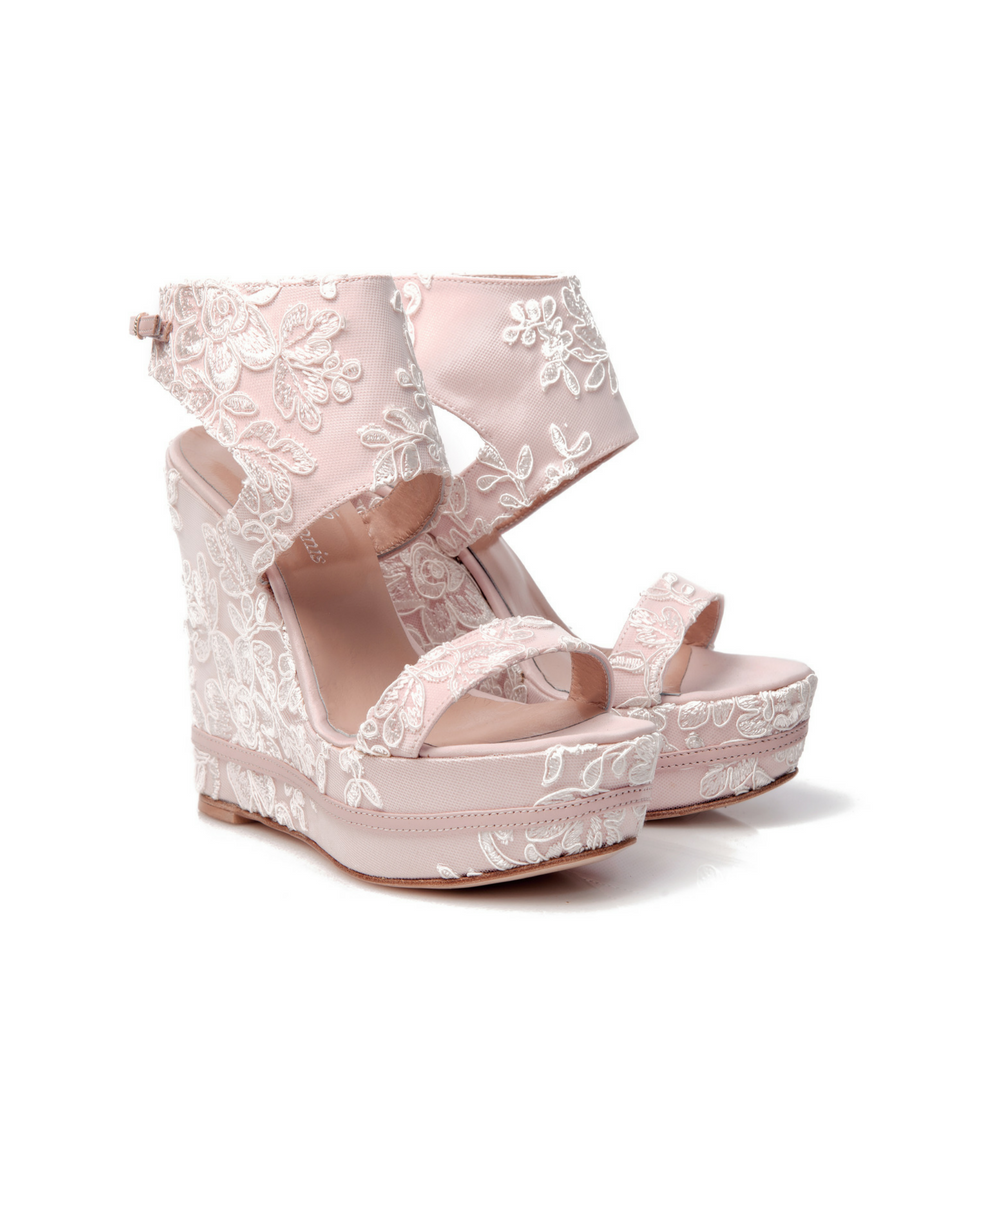 Bridal Wedges Pink Satin With Lace Mod.2438